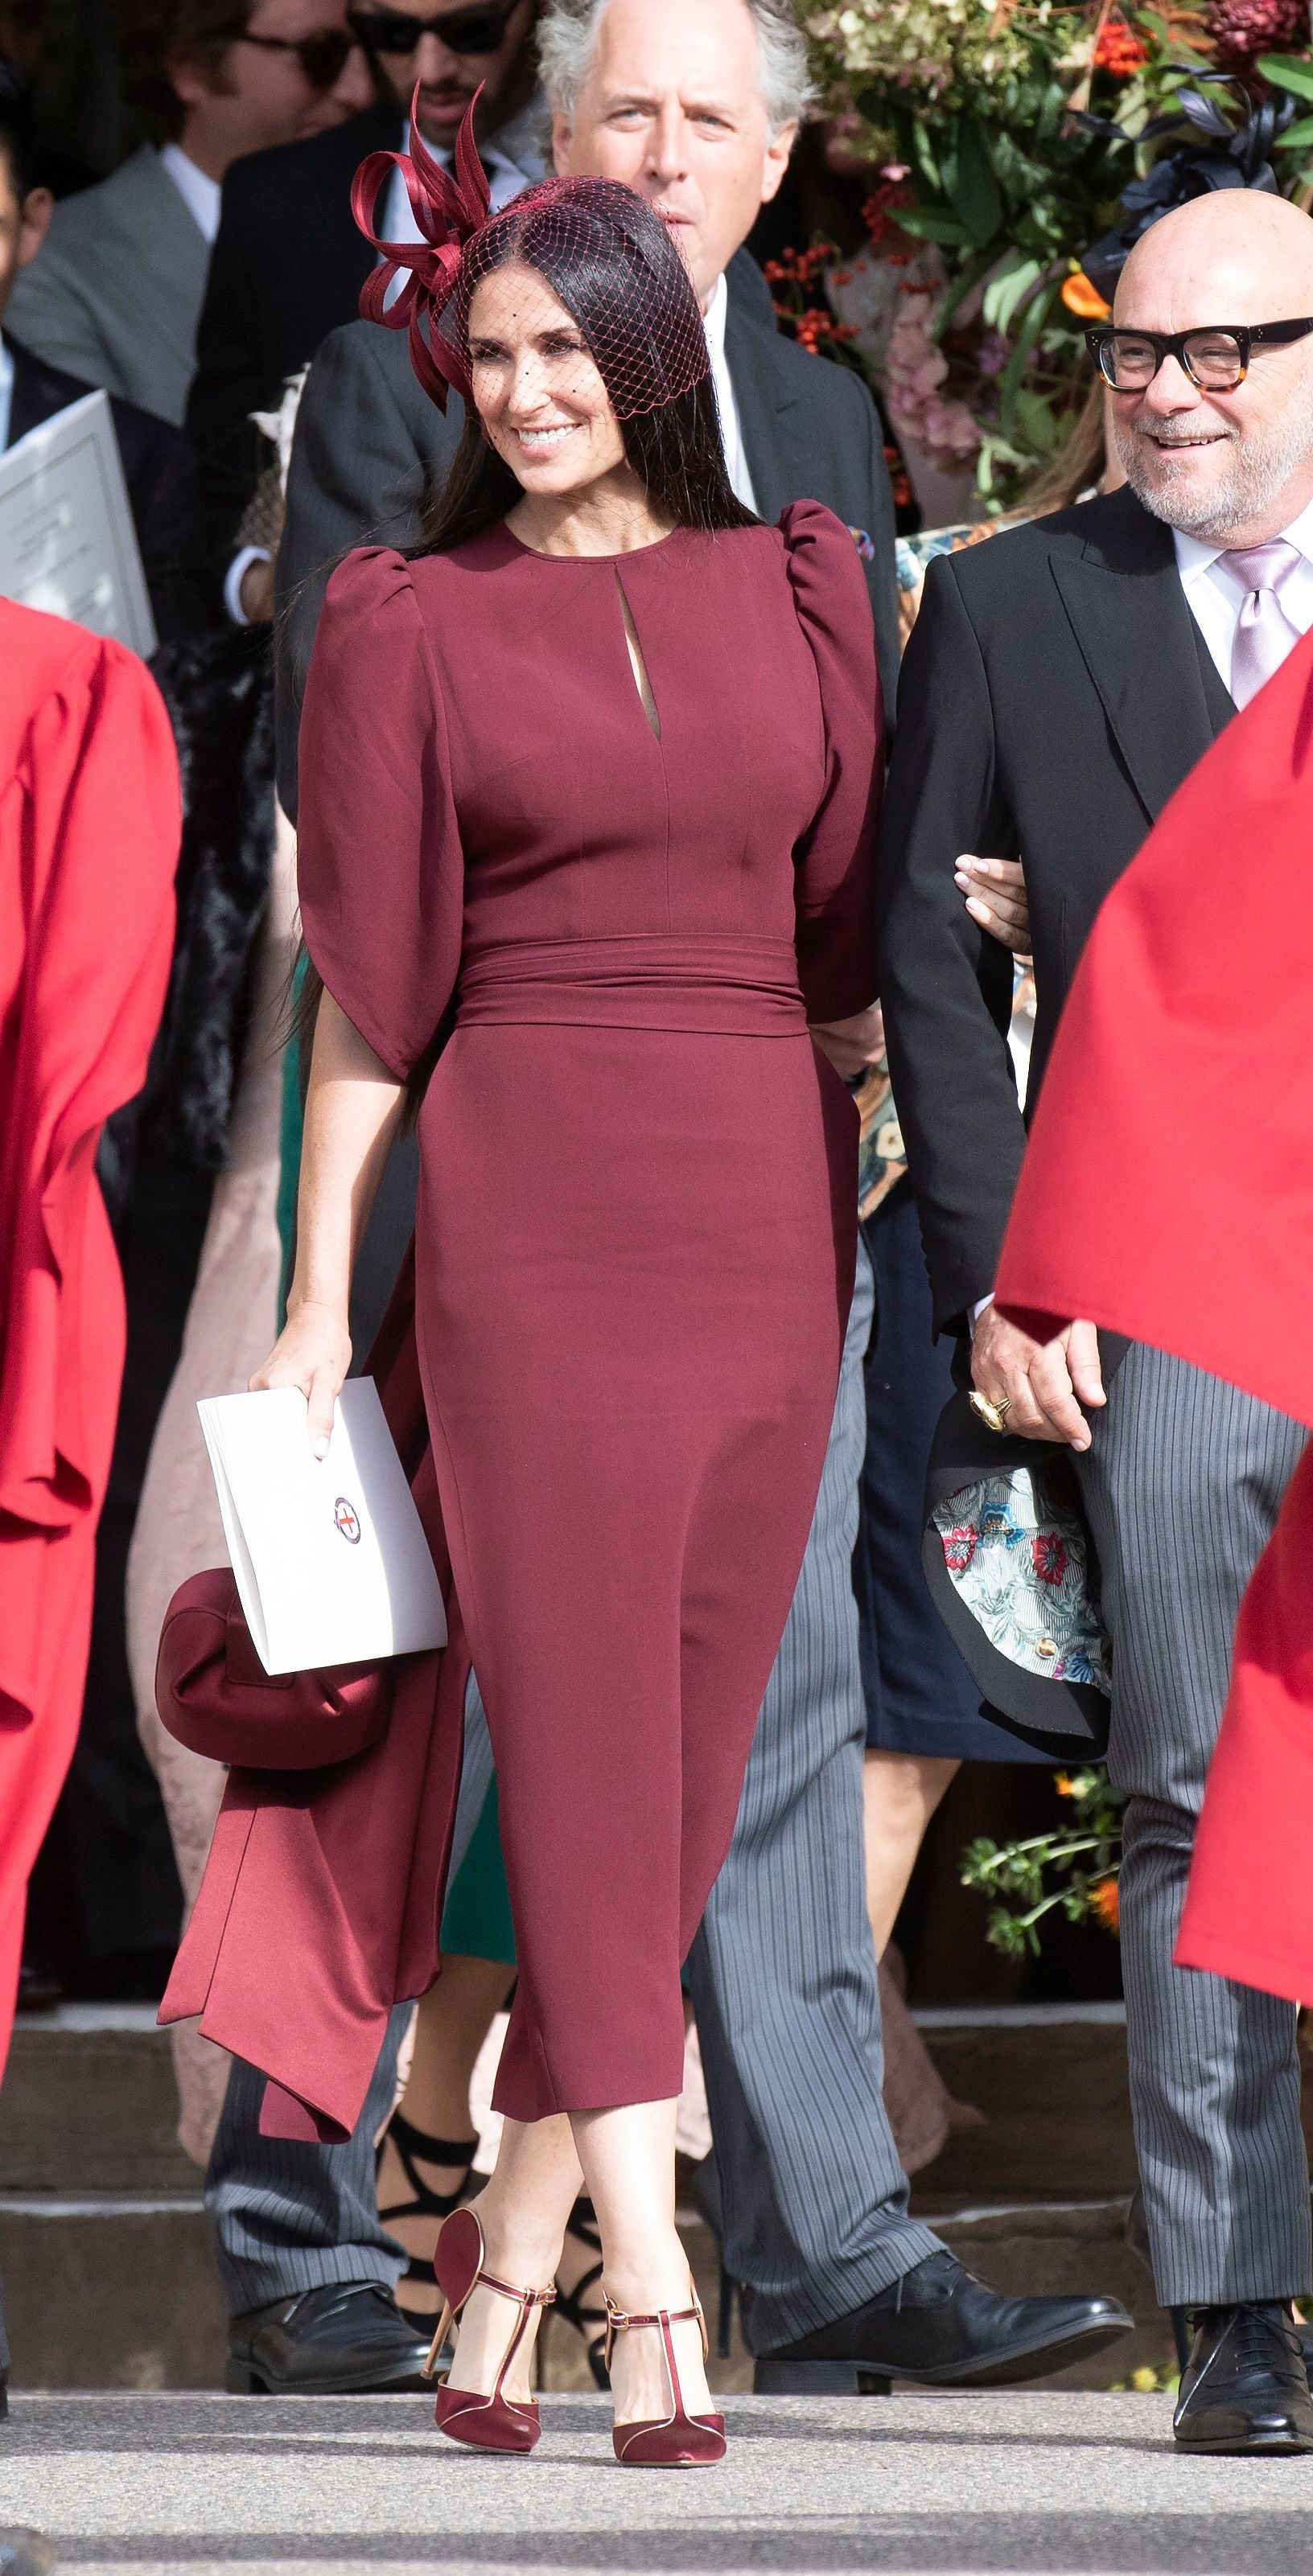 Demi Moore attends Princess Eugenie of York and Jack Brooksbank's wedding at St. George's Chapel at Windsor Castle on Oct. 12, 2018.